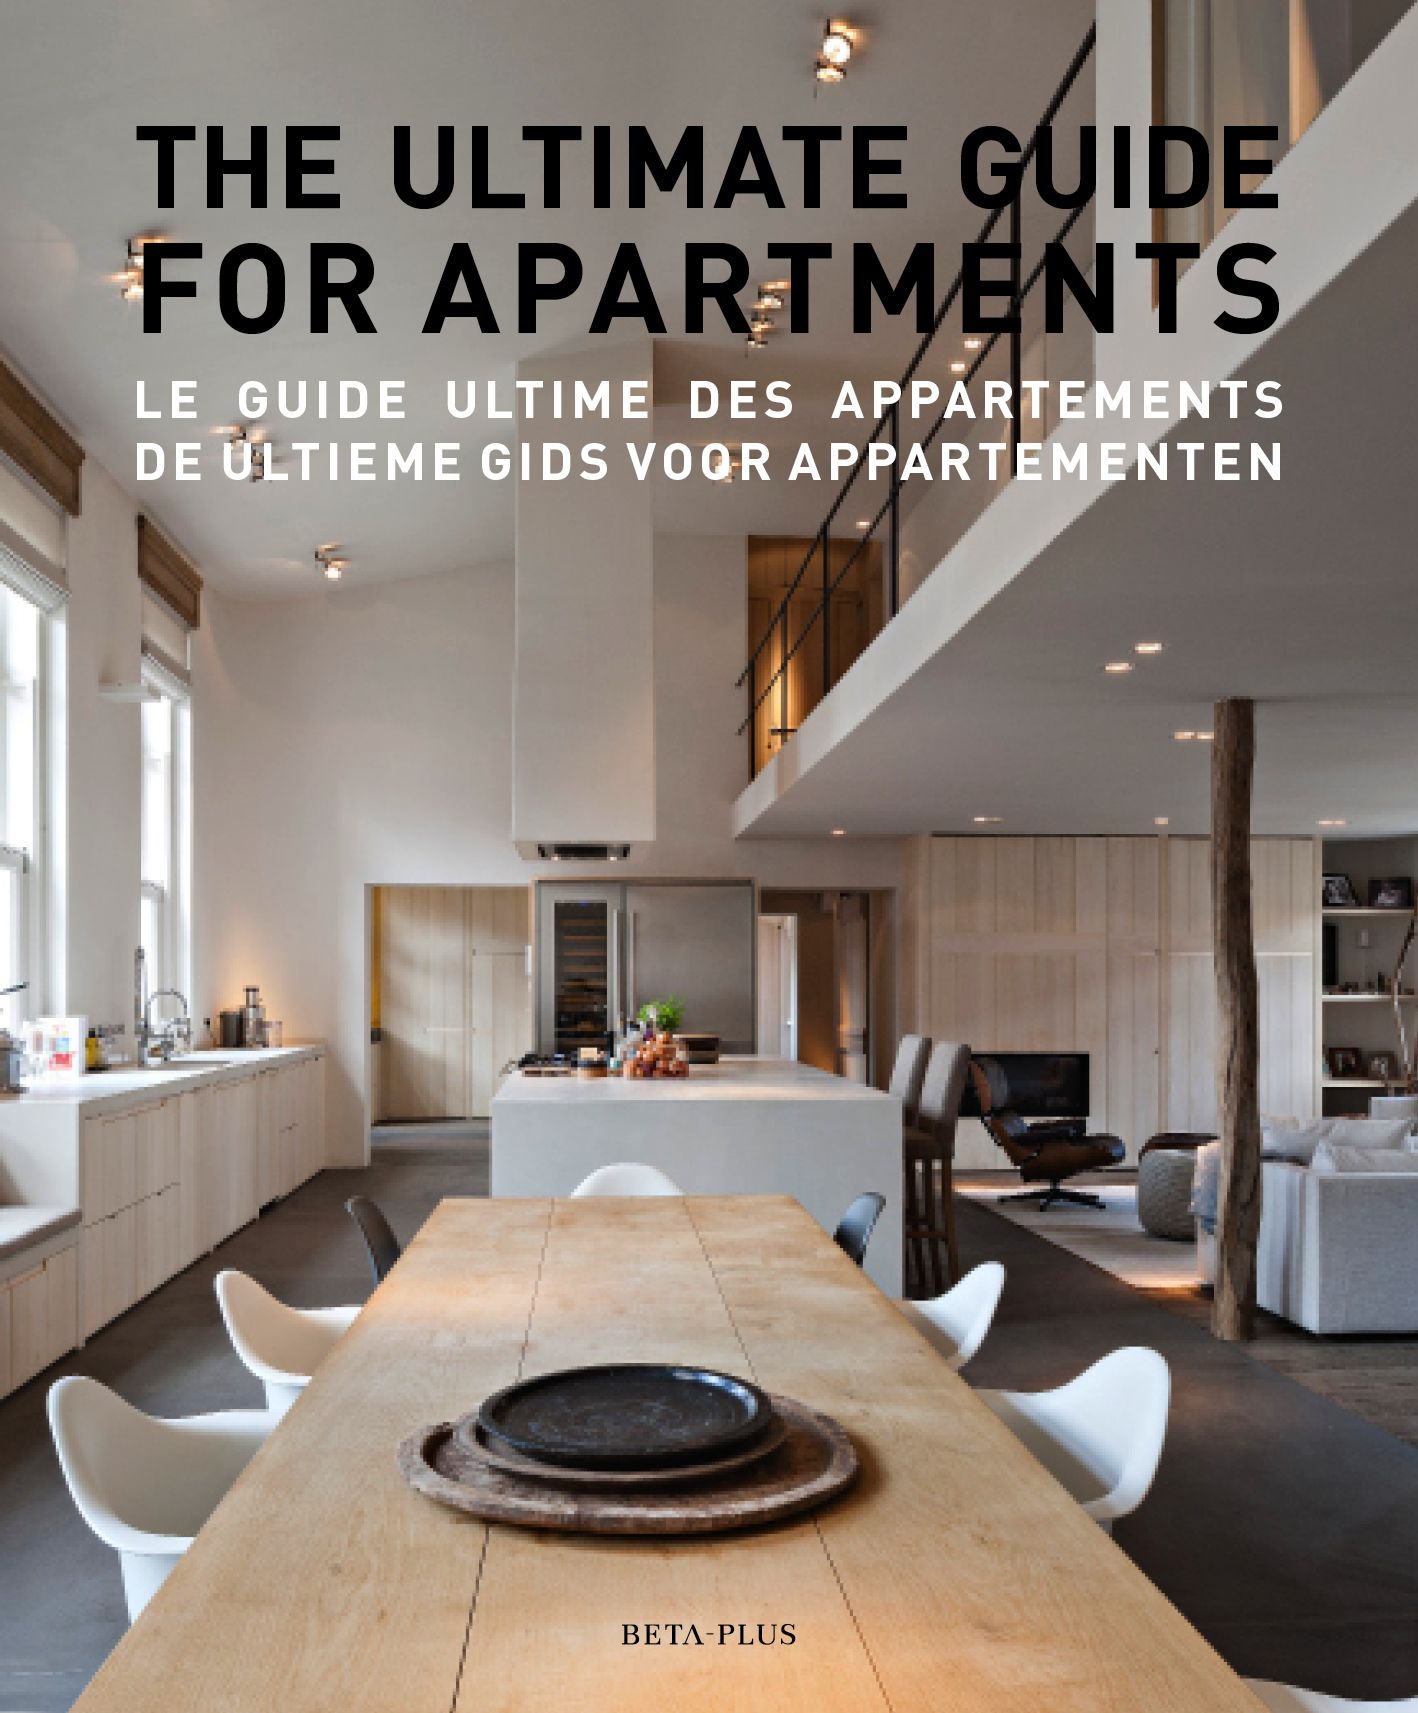 Lovely Interior Design, Architecture, Kitchen Ideas, Interior, Home Decor. THE ULTIMATE  GUIDE FOR APARTMENTS This Book Presents ...